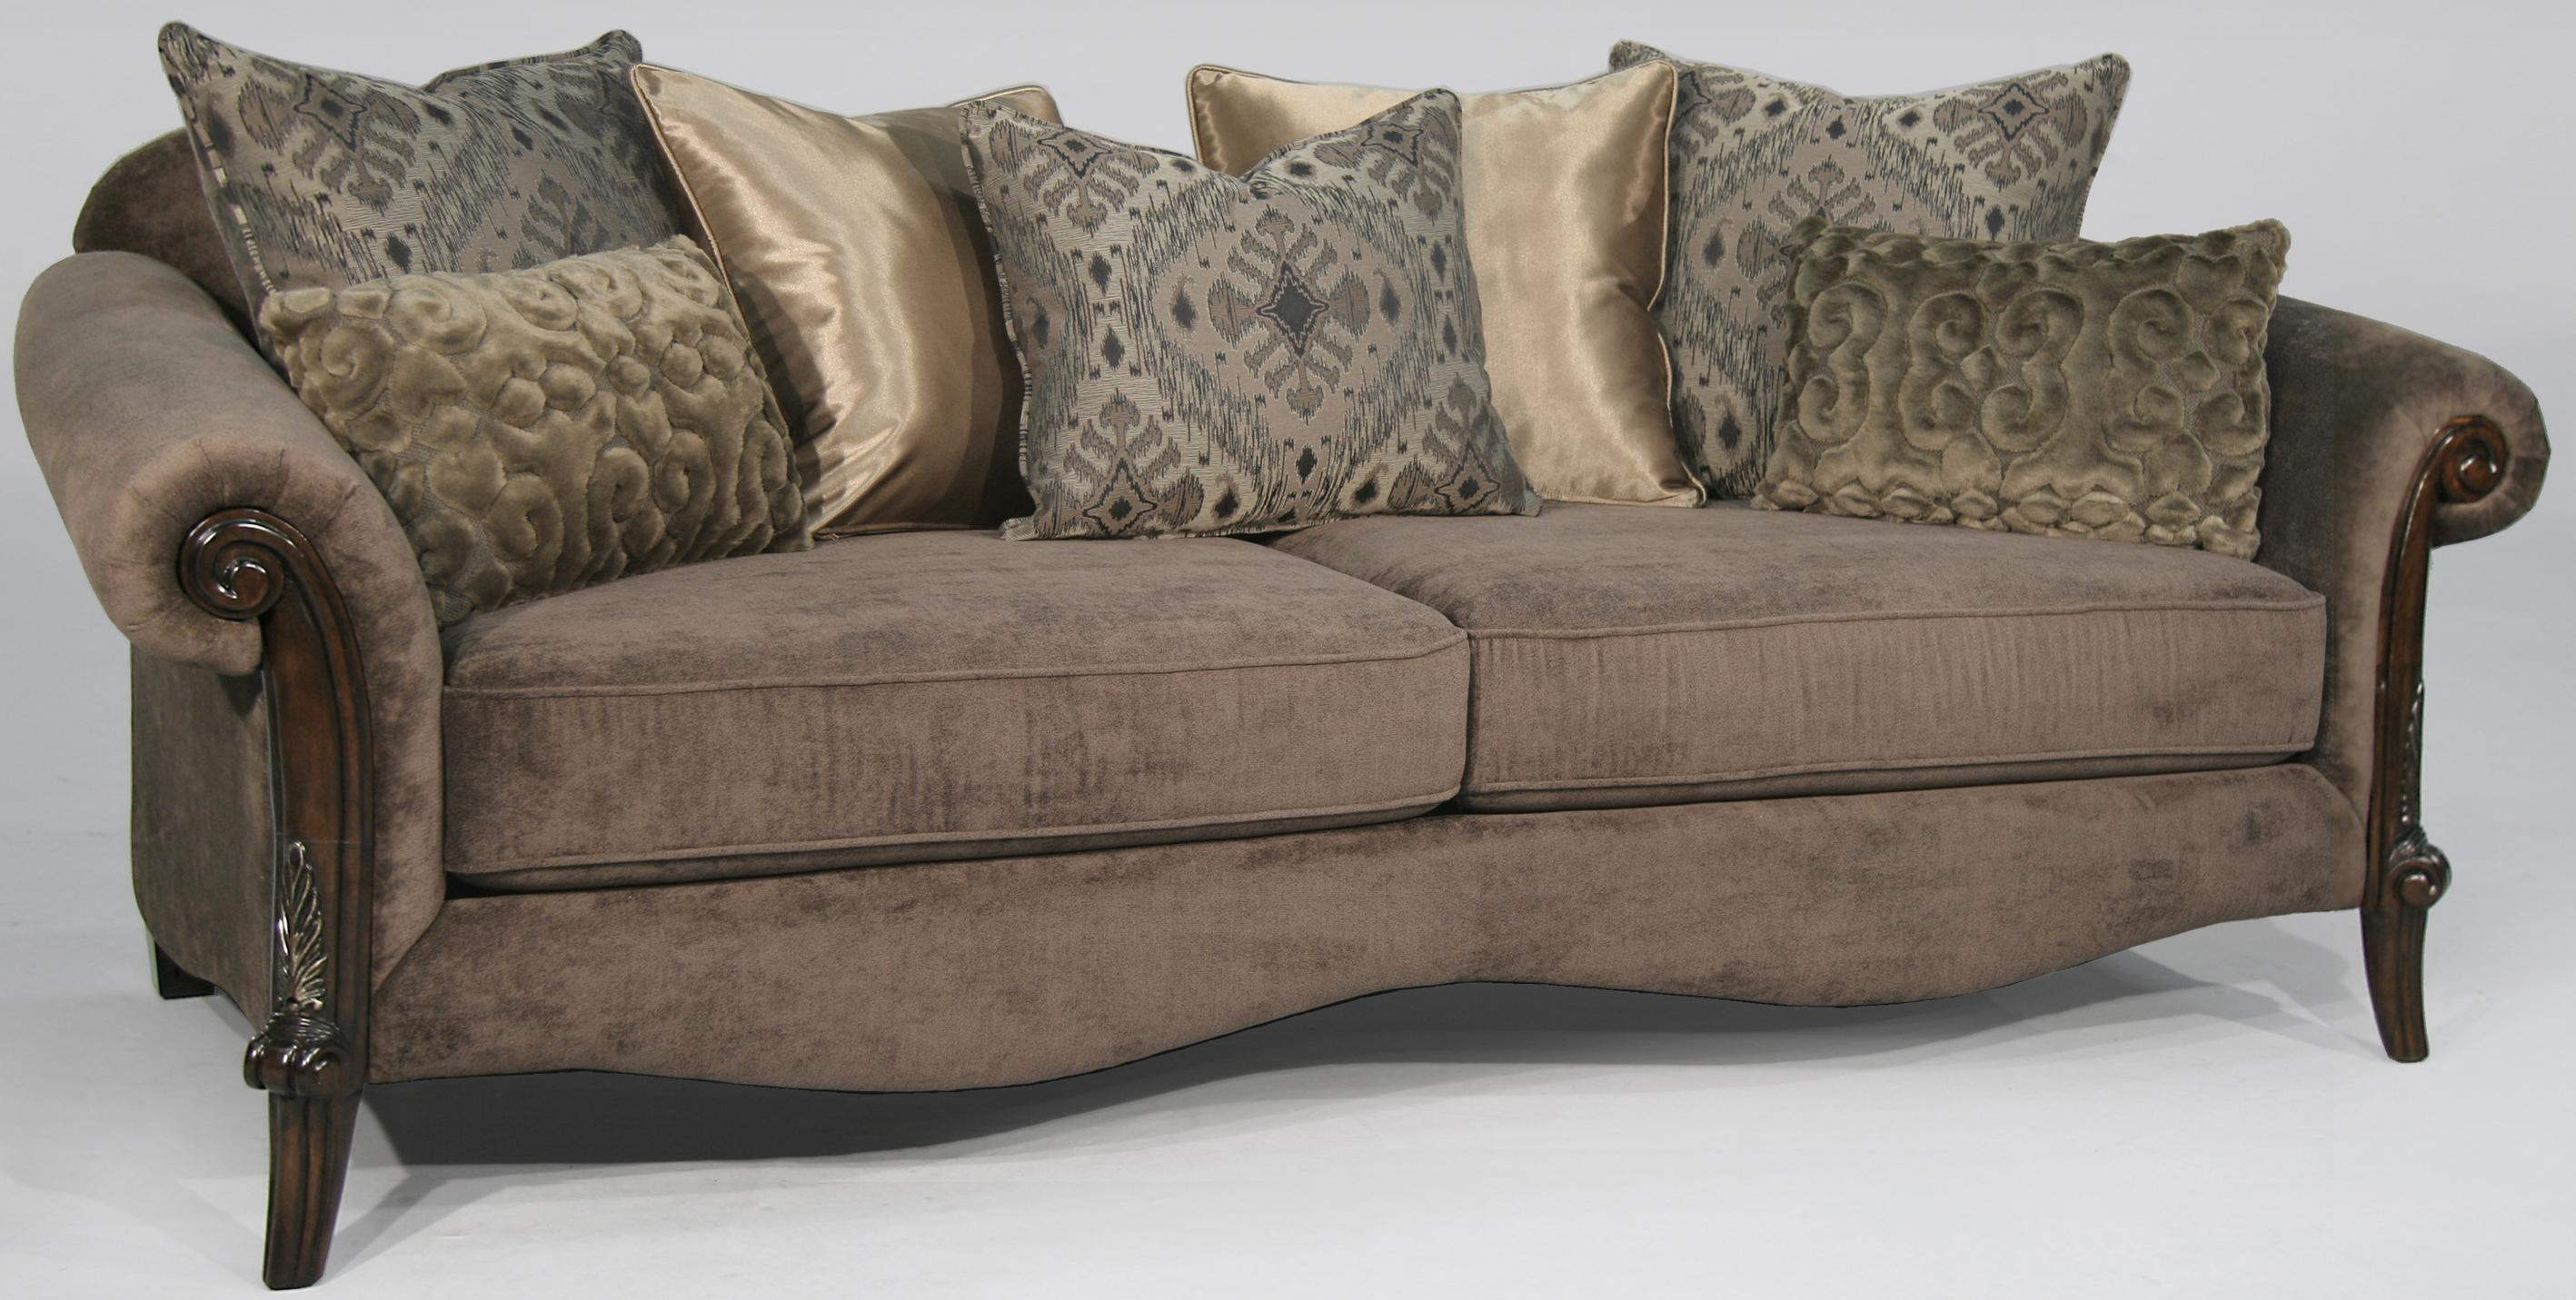 Fairmont Designs Le Marias Stationary Sofa W Rolled Arms Dream Home Furniture Sofa Roswell